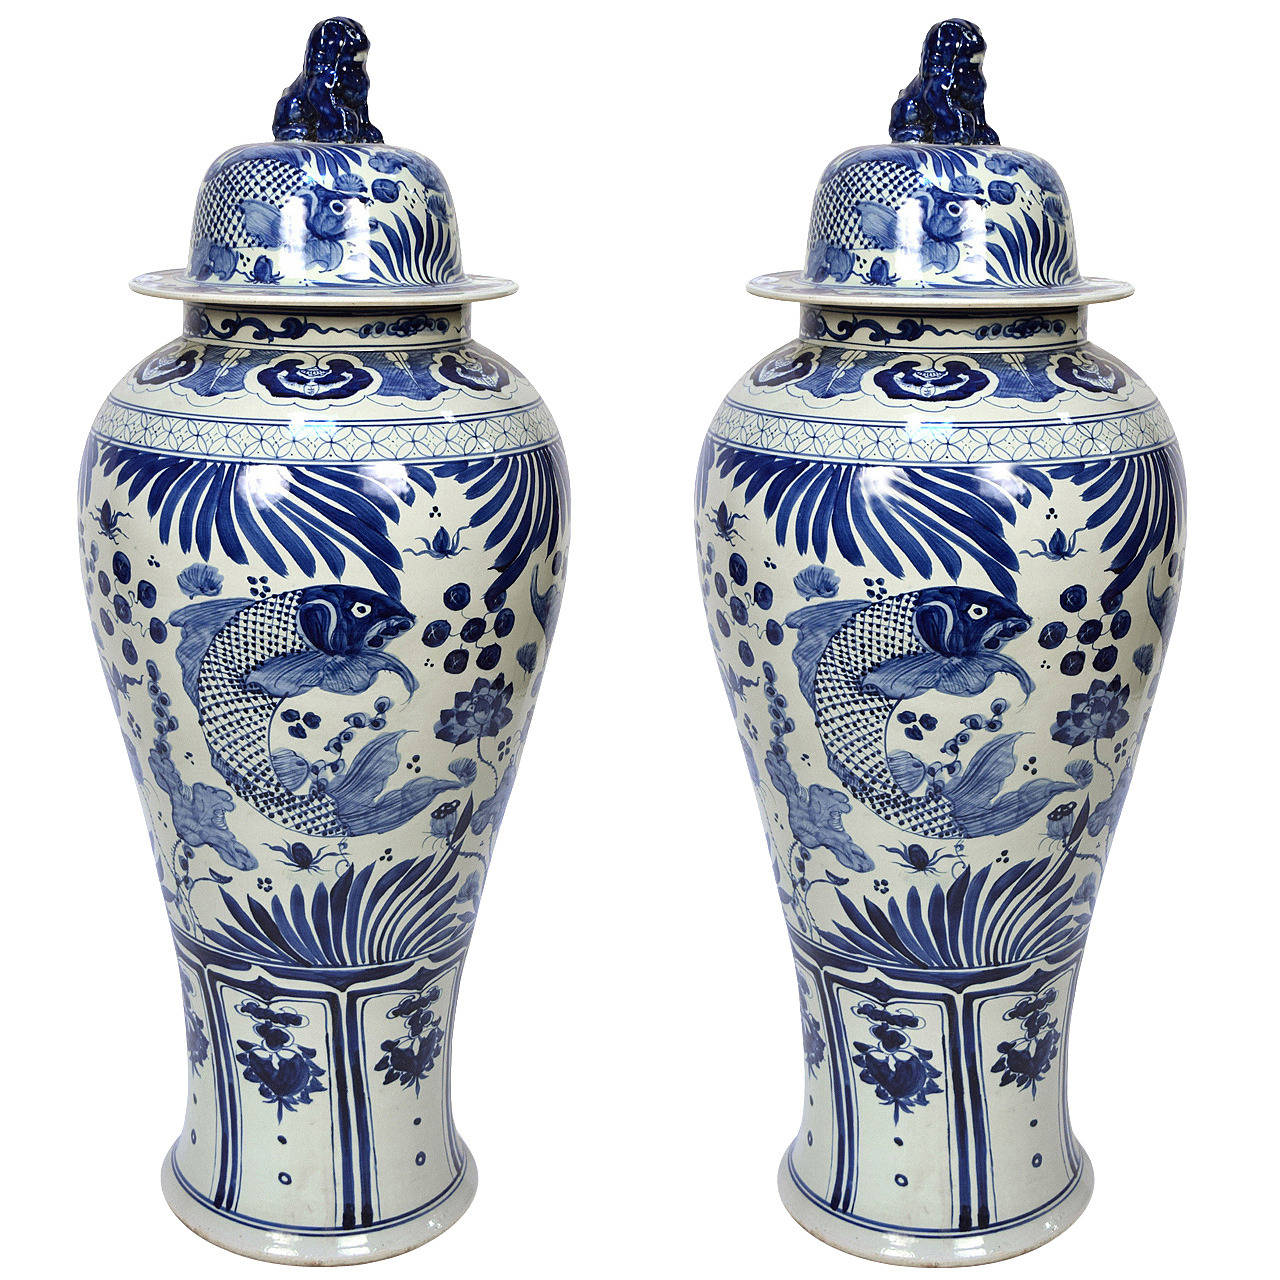 Pair of monumental blue and white fish vases with shizi tops for pair of monumental blue and white fish vases with shizi tops for sale reviewsmspy